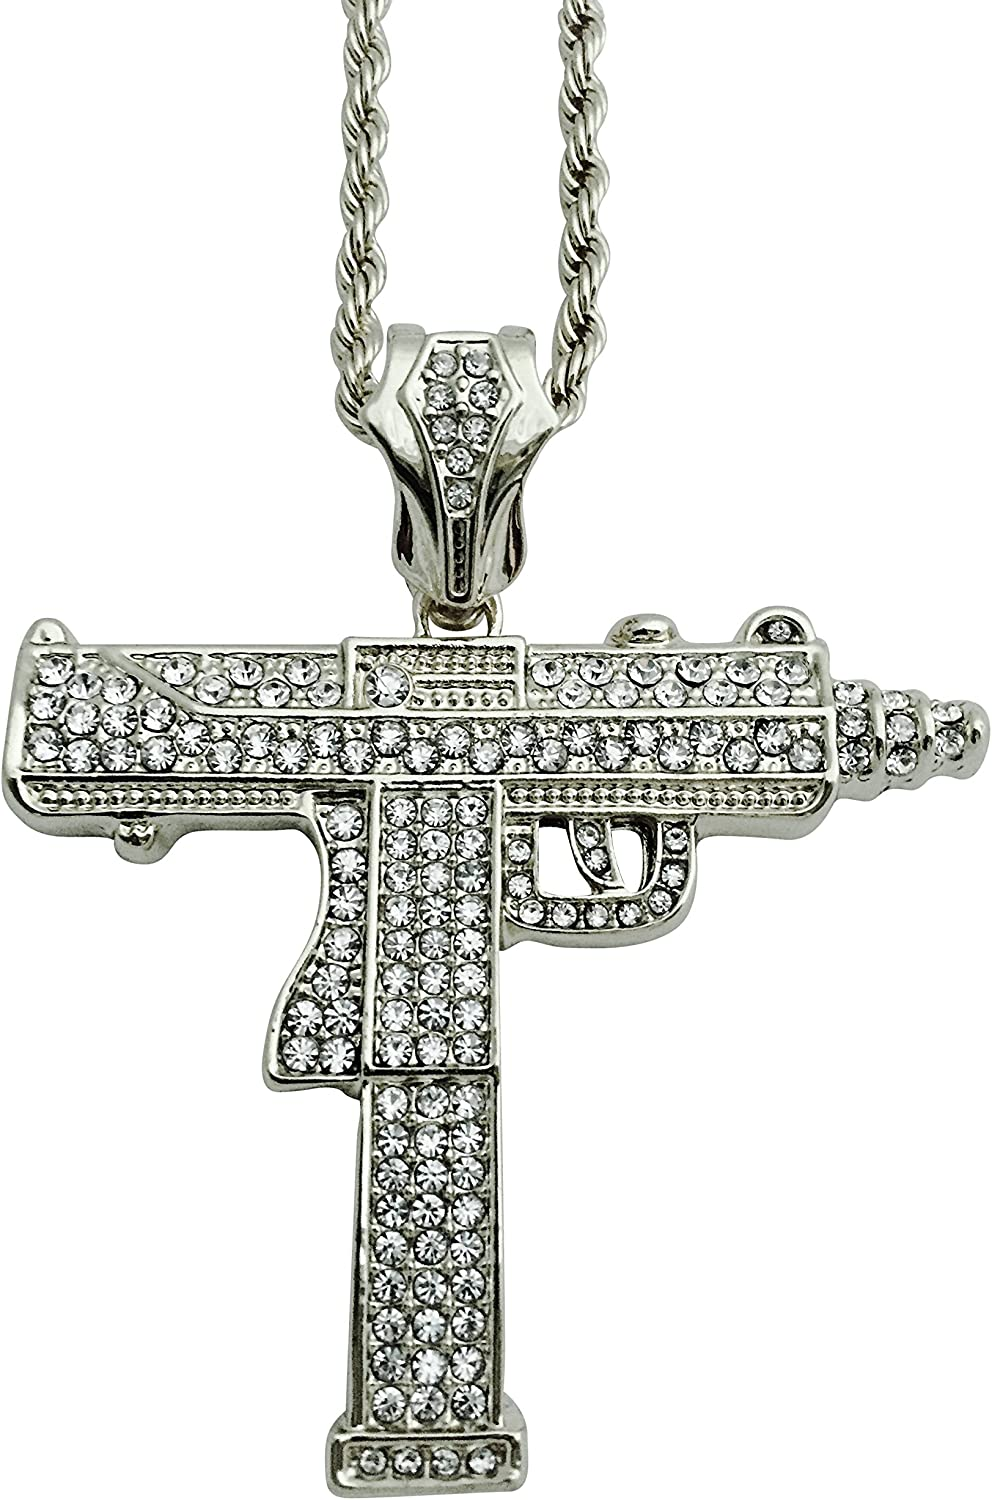 Silver tone Sniper Rifle Gun Charms Pendant Craft Cards Hip Hop bling Tag